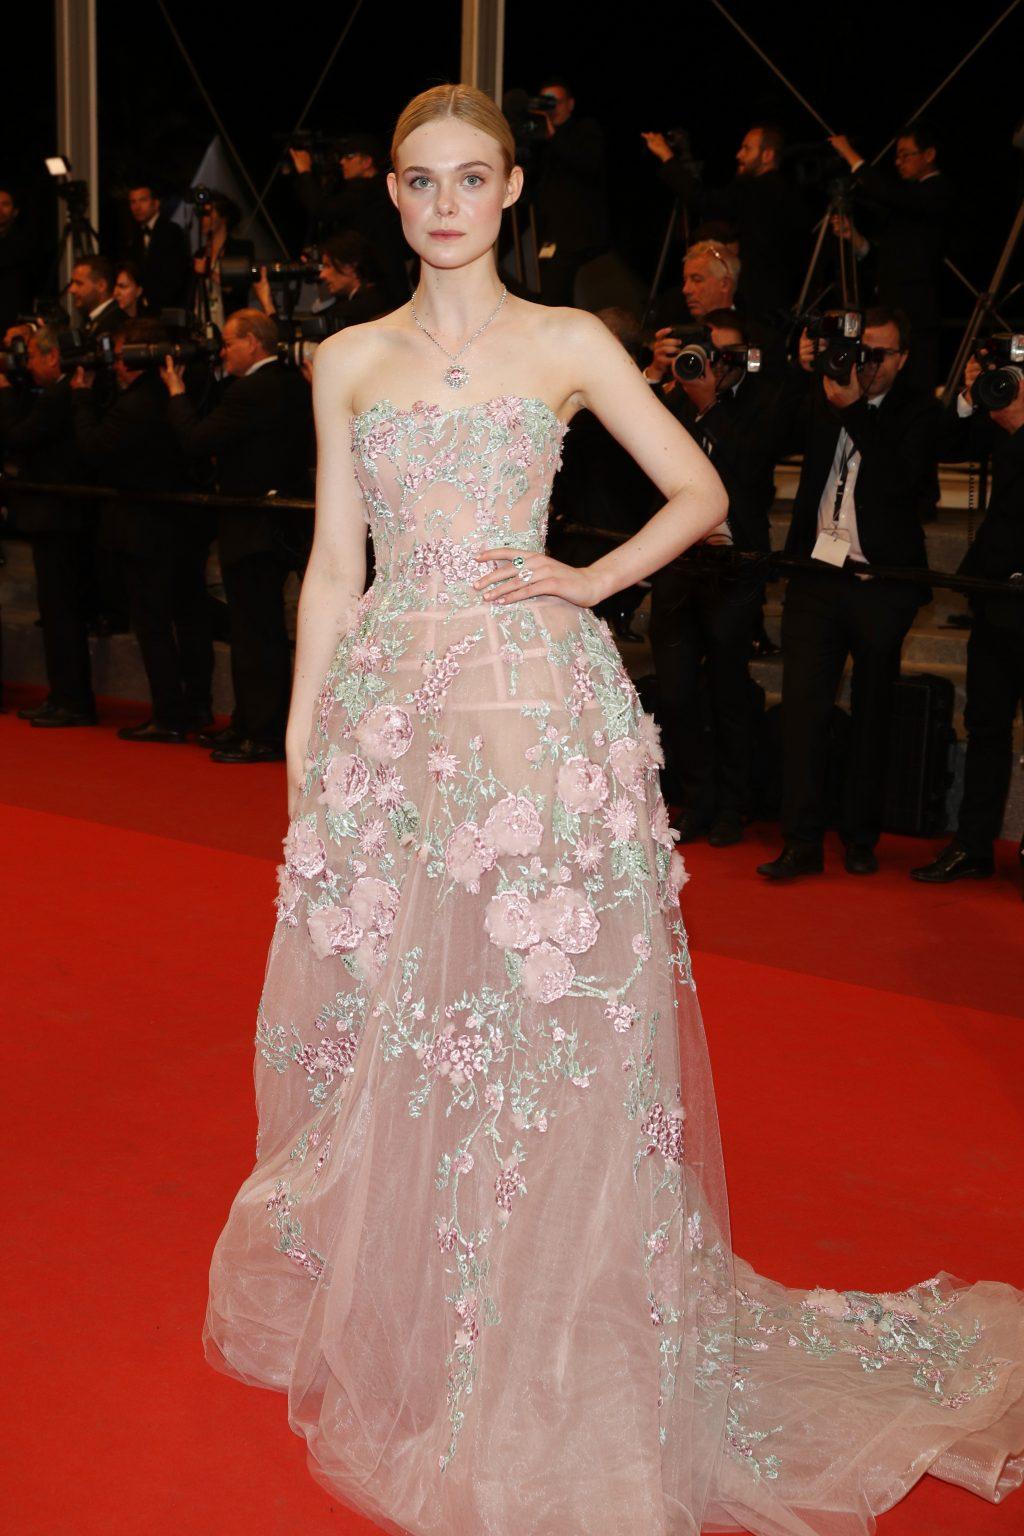 The Most Stunning Gowns from the 2016 Cannes Film Festival (So Far)